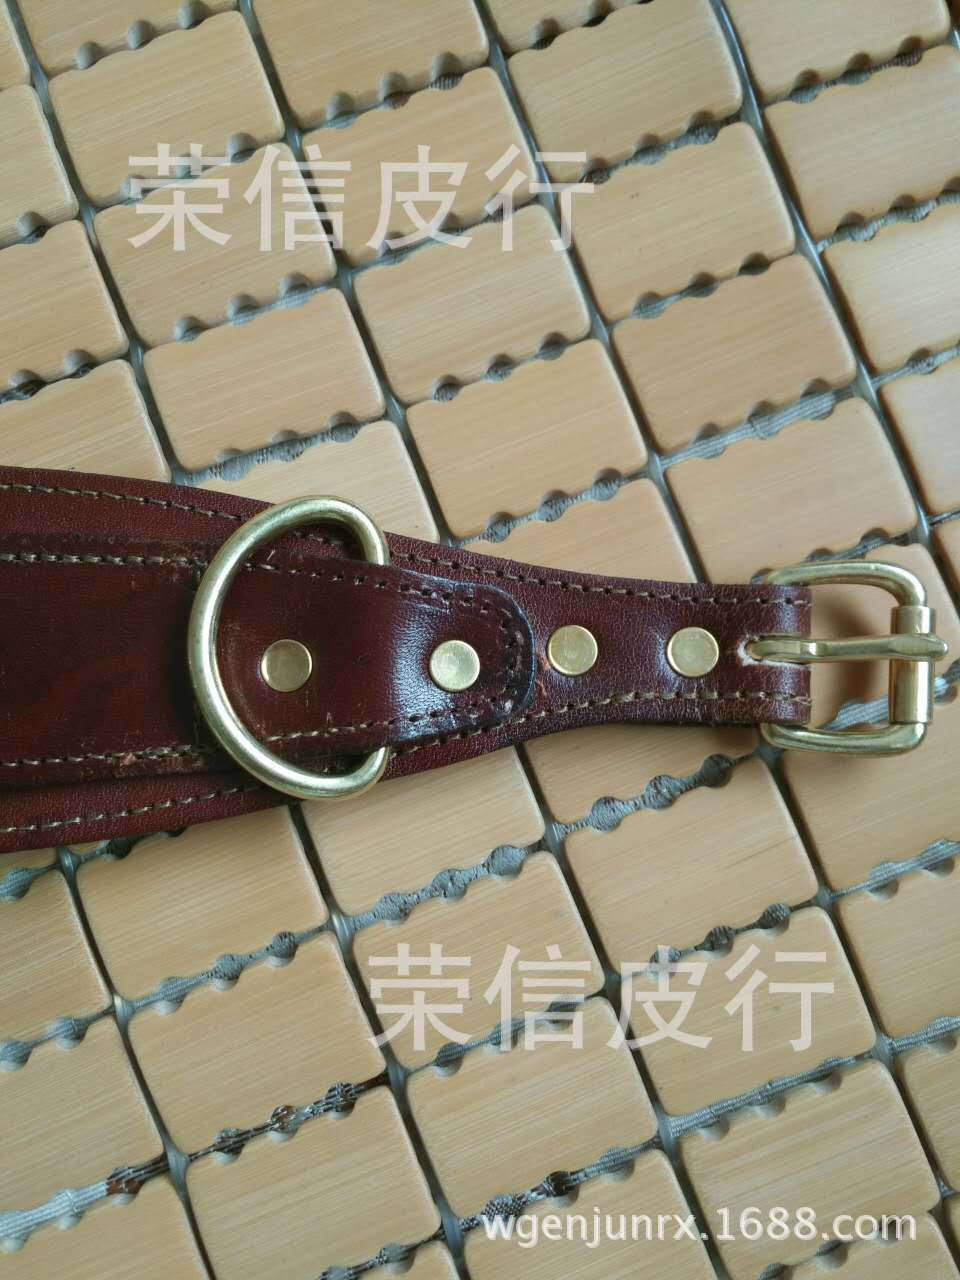 Special Offer Processing Leather Strips Hand Holding Rope Pet Dog Cat With Cattle Pippi Neck Ring